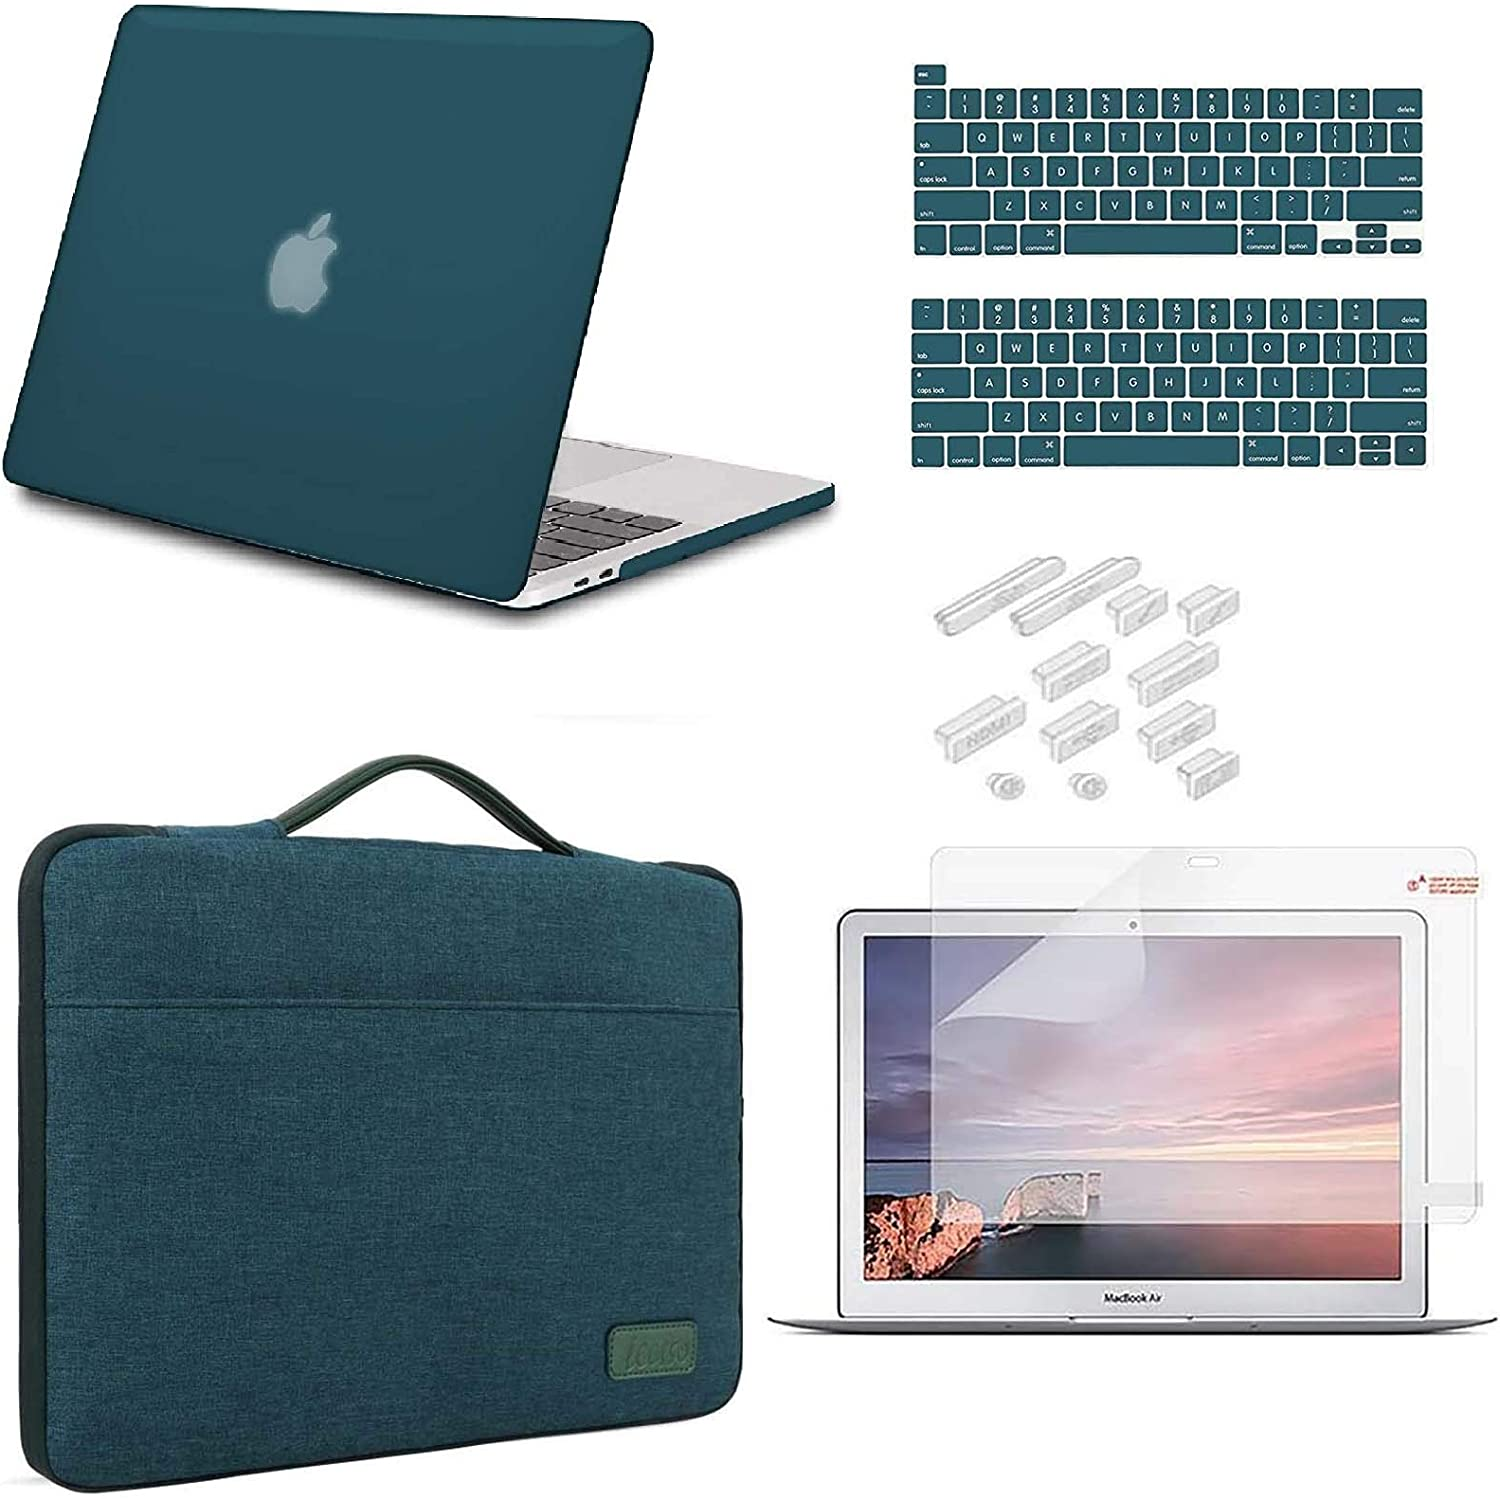 iCasso MacBook Pro 13 Inch Case 2020 Release Model A2338M1 /A2251/A2289 Bundle 5 in 1, Hard Shell Case, Sleeve, Screen Protector, Keyboard Cover&Dust Plug Compatible MacBook Pro 13'' -Dark Cyan